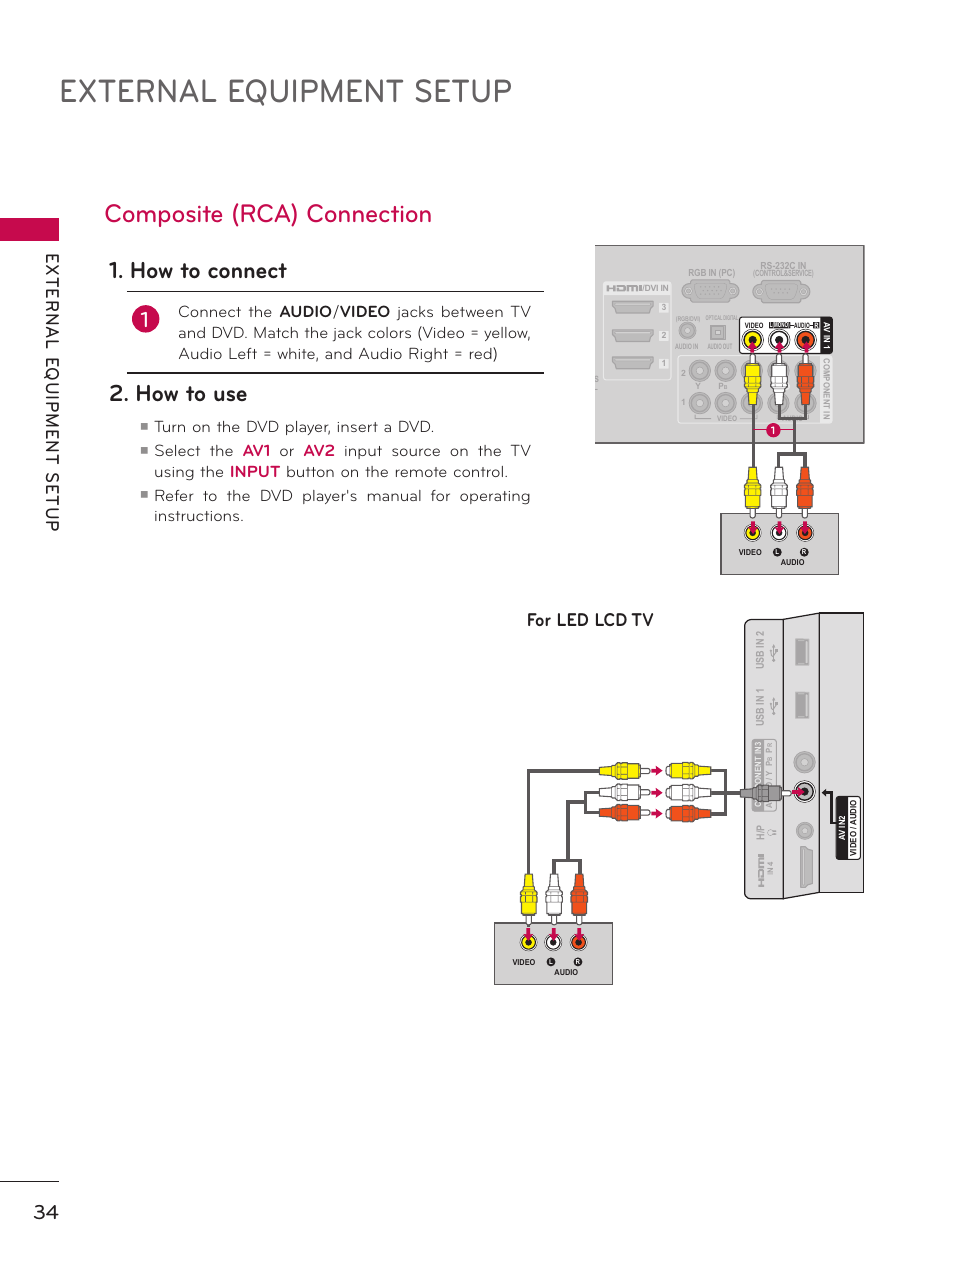 Composite Rca Connection External Equipment Setup How To Connect